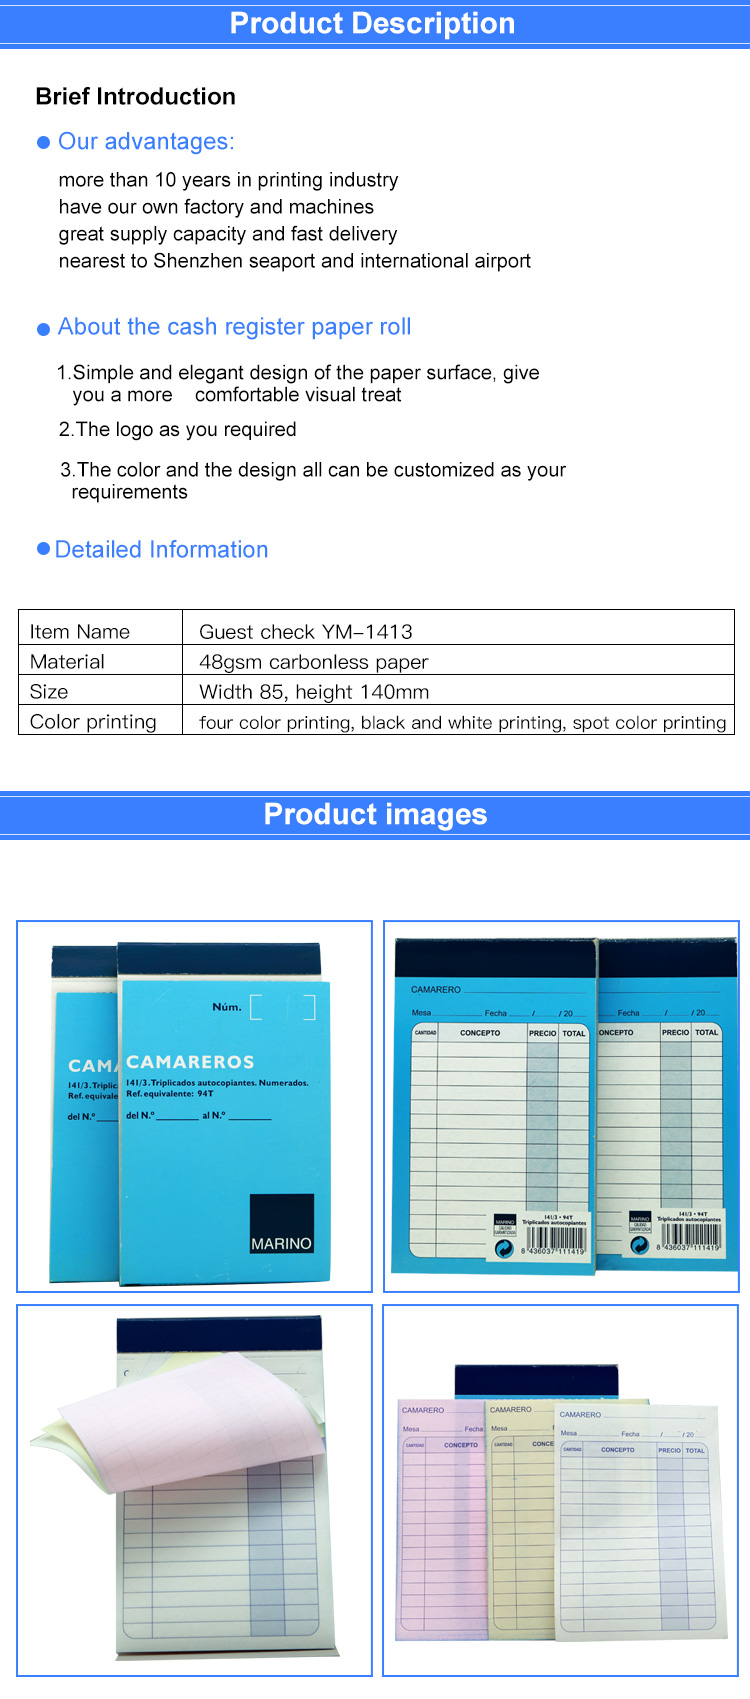 Tax Exempt Donation Receipt Ncr Paper Popular Receipt Book Invoice Book Memo Book For Hotels  Save Receipts App Word with How To Fill Out Certified Mail Receipt Ncr Paper Popular Receipt Book Invoice Book Memo Book For Hotels And Company Sample For Invoice Word